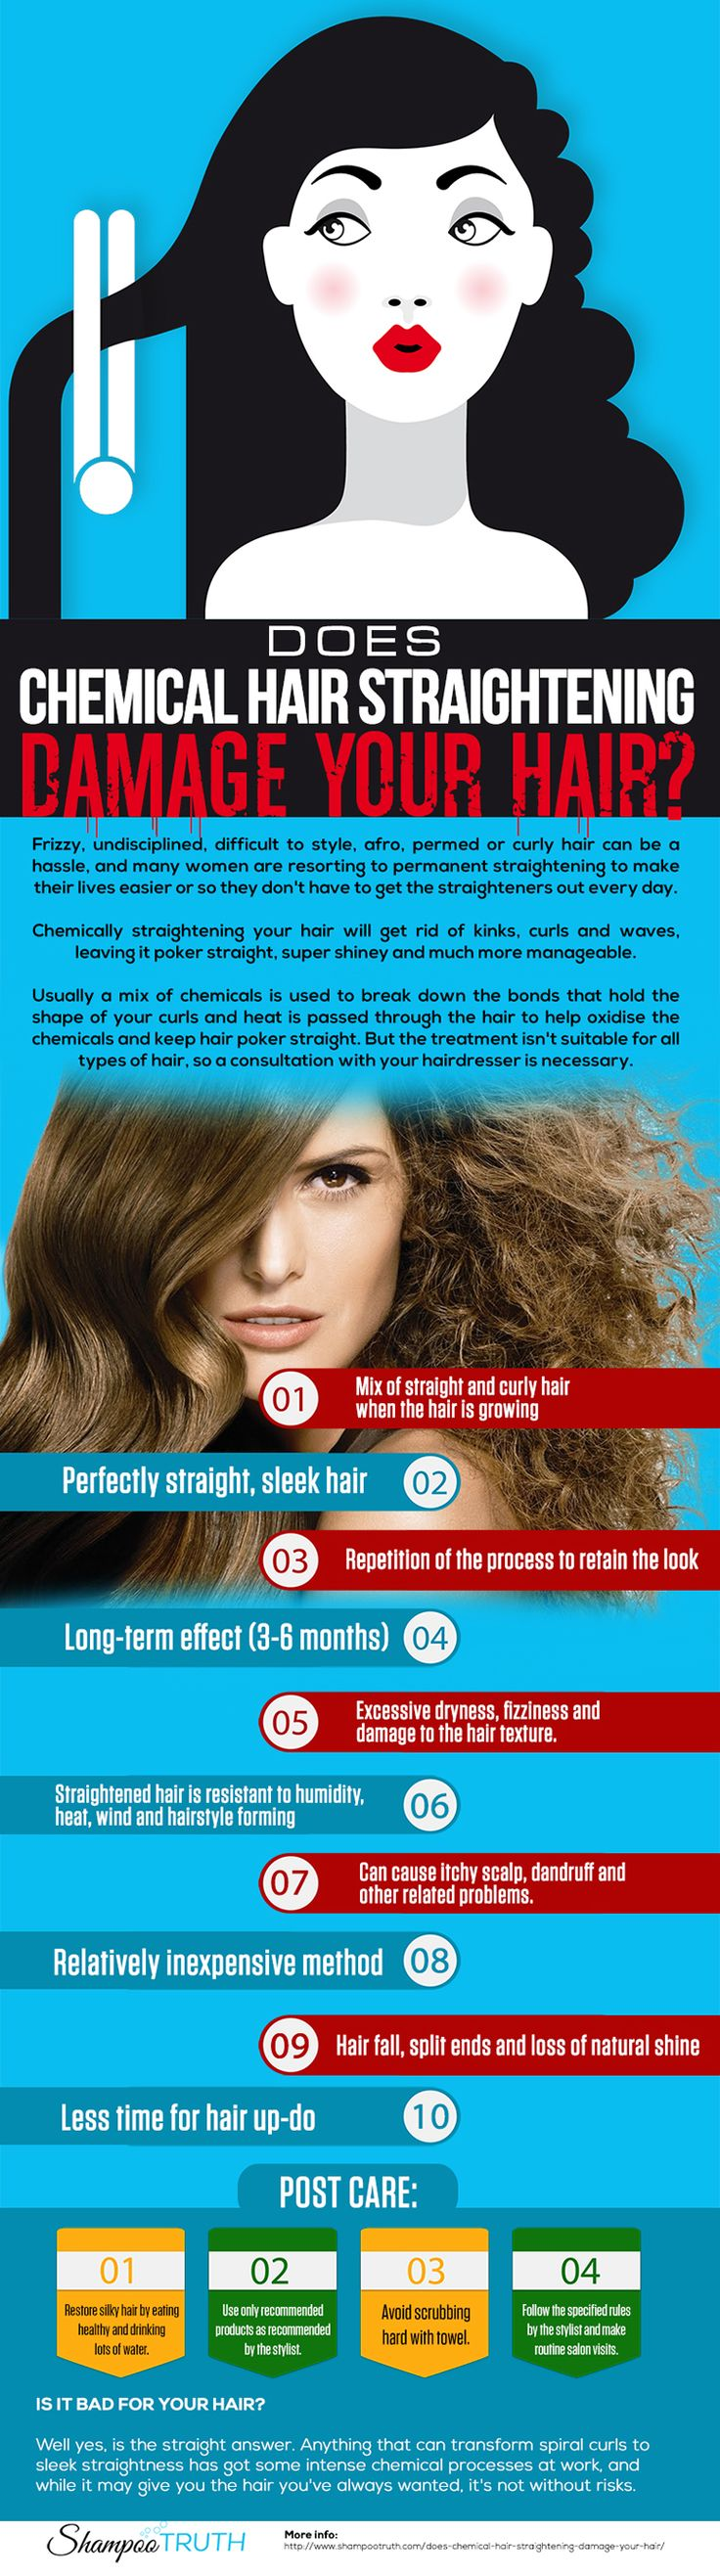 Does chemical hair straightening damage your hair? If you've been trying to figure out whether or not, you've come to the right place!